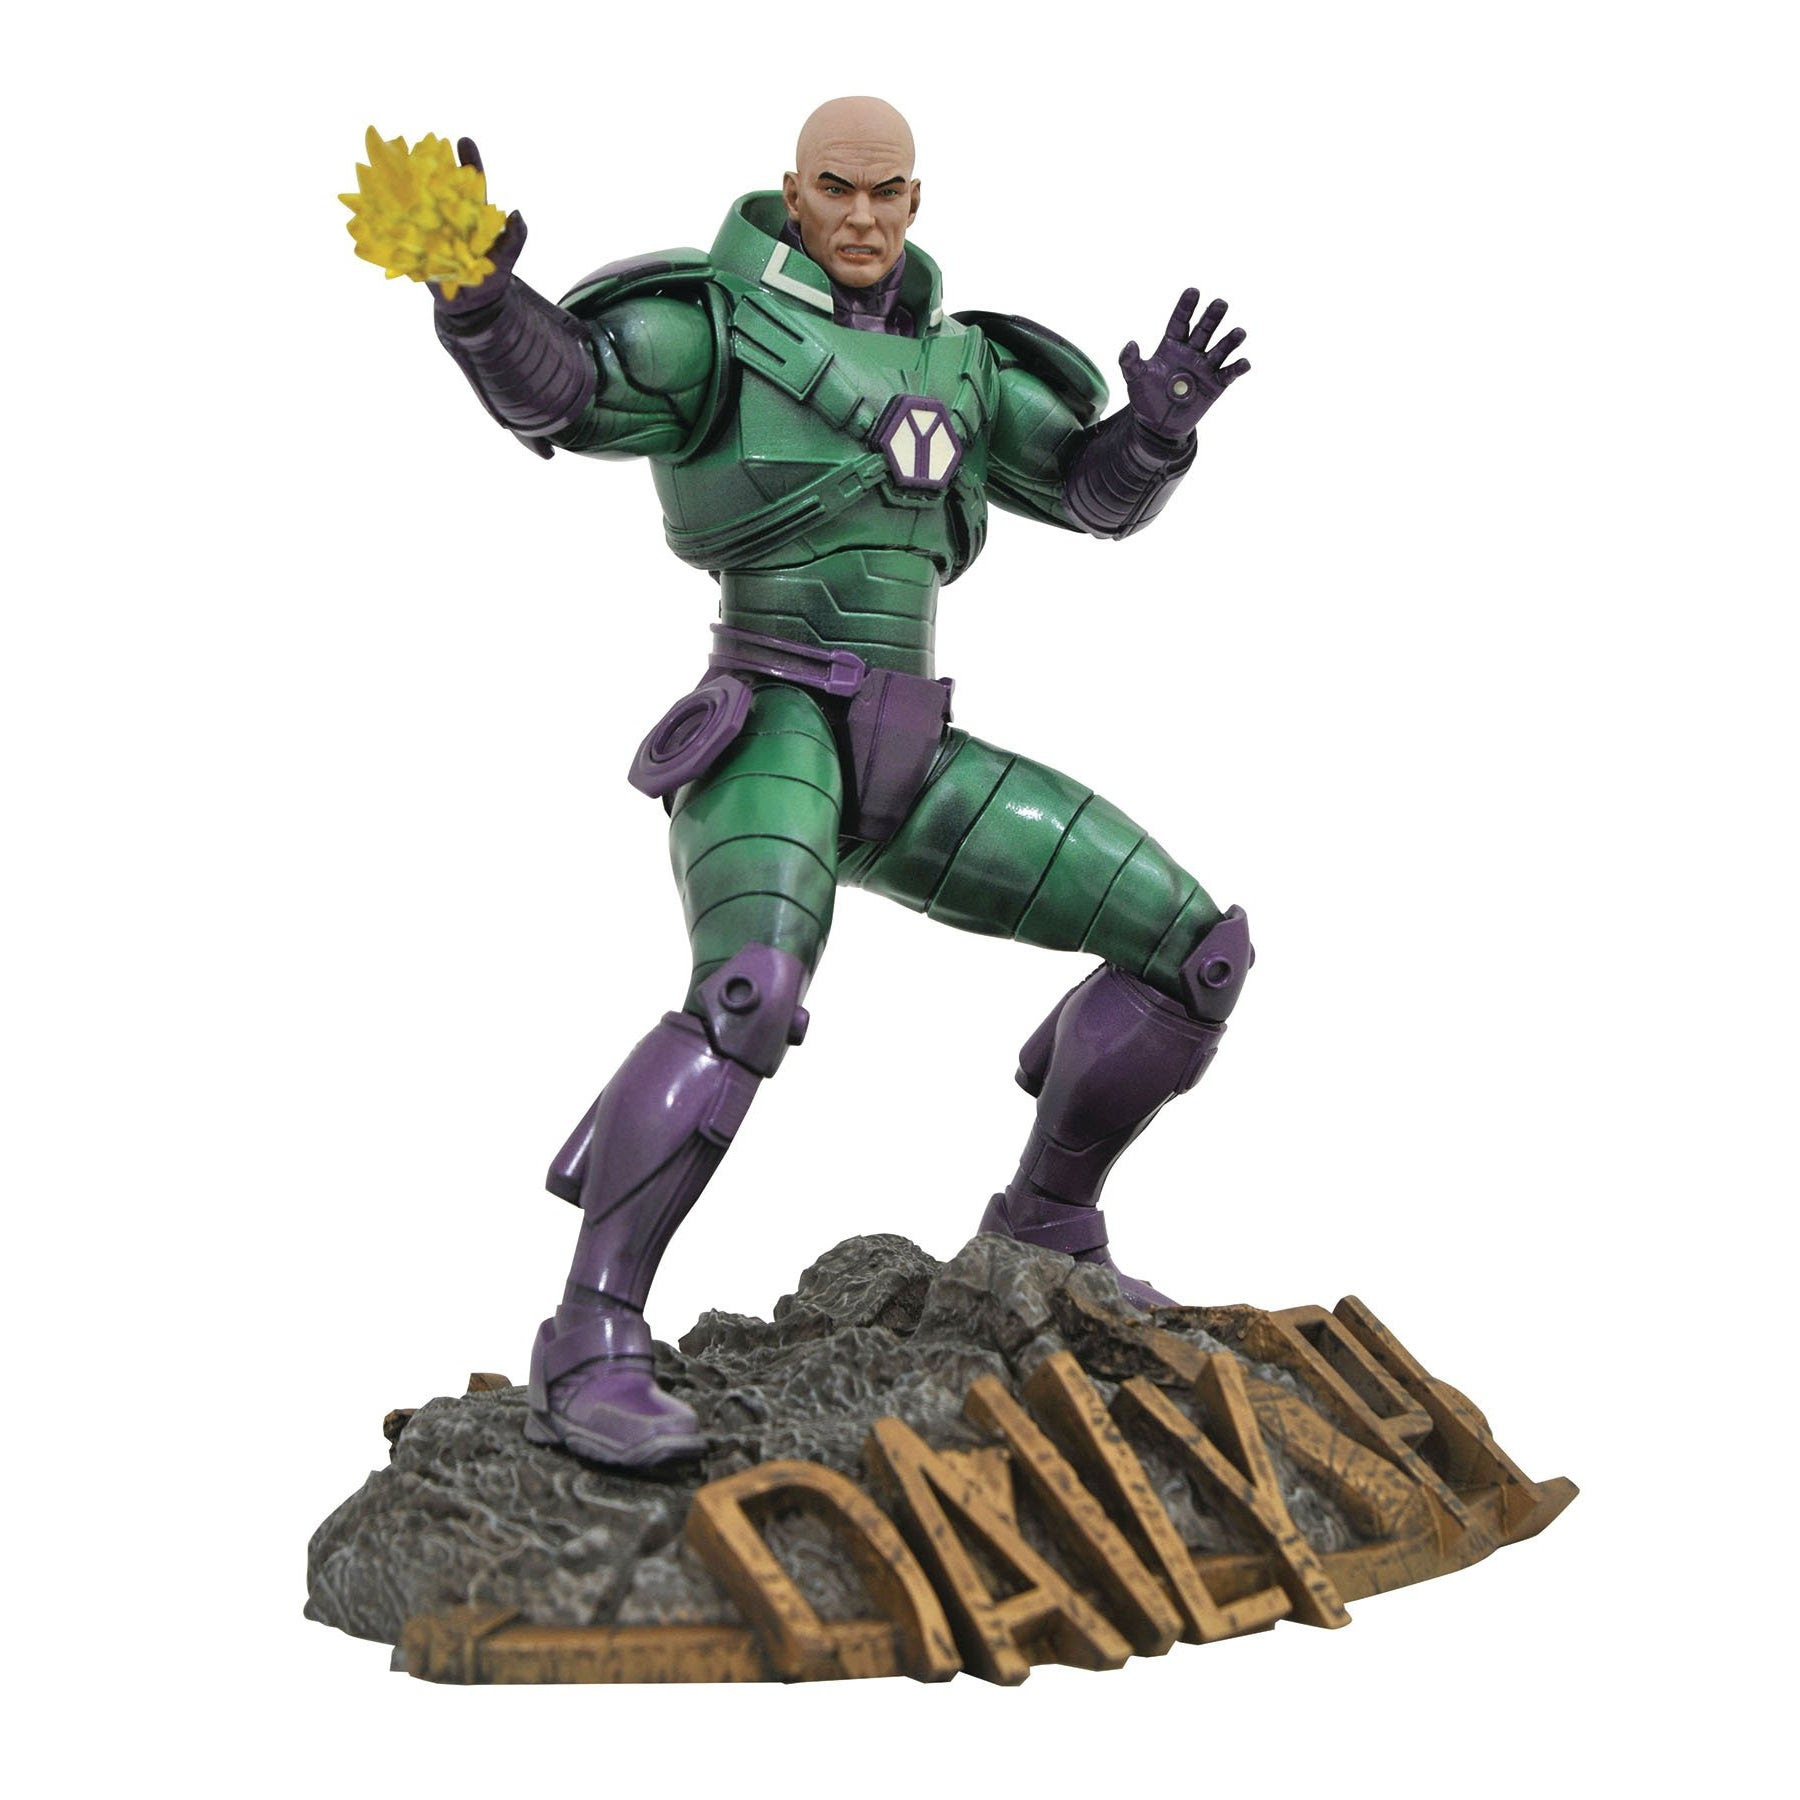 Image of DC Gallery Comic Lex Luthor PVC Statue - JULY 2020